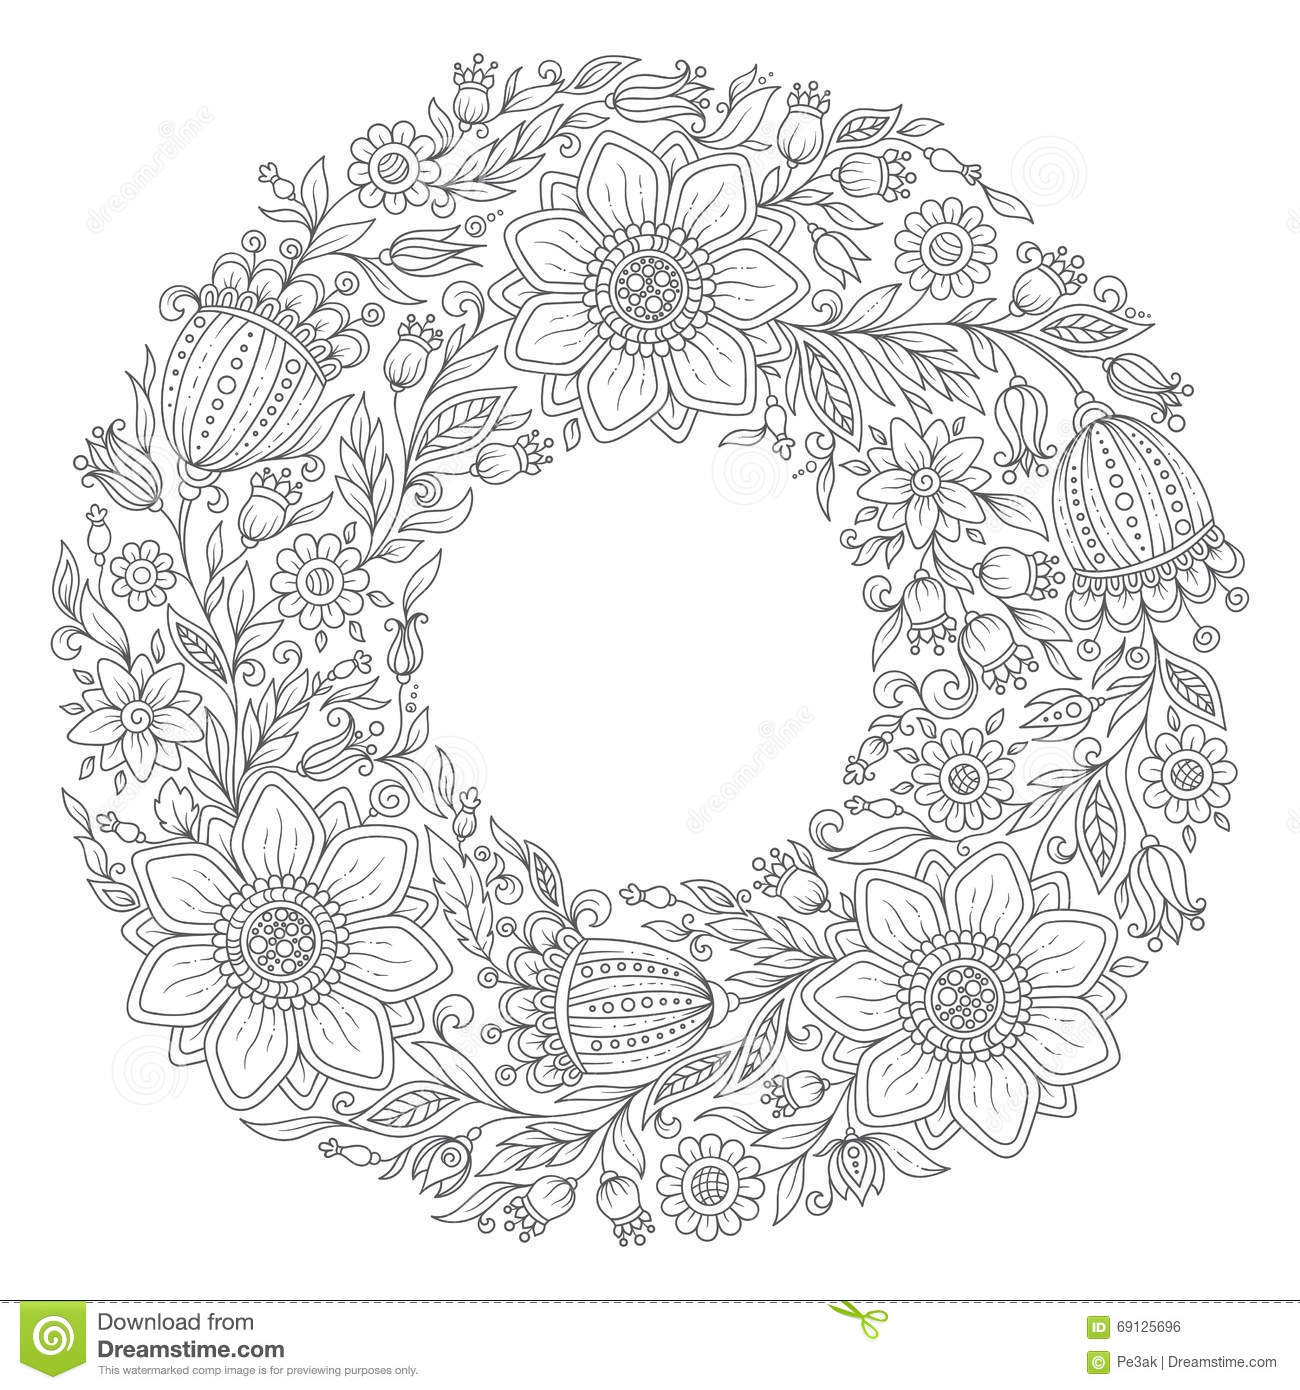 rose garland coloring pages - photo#24